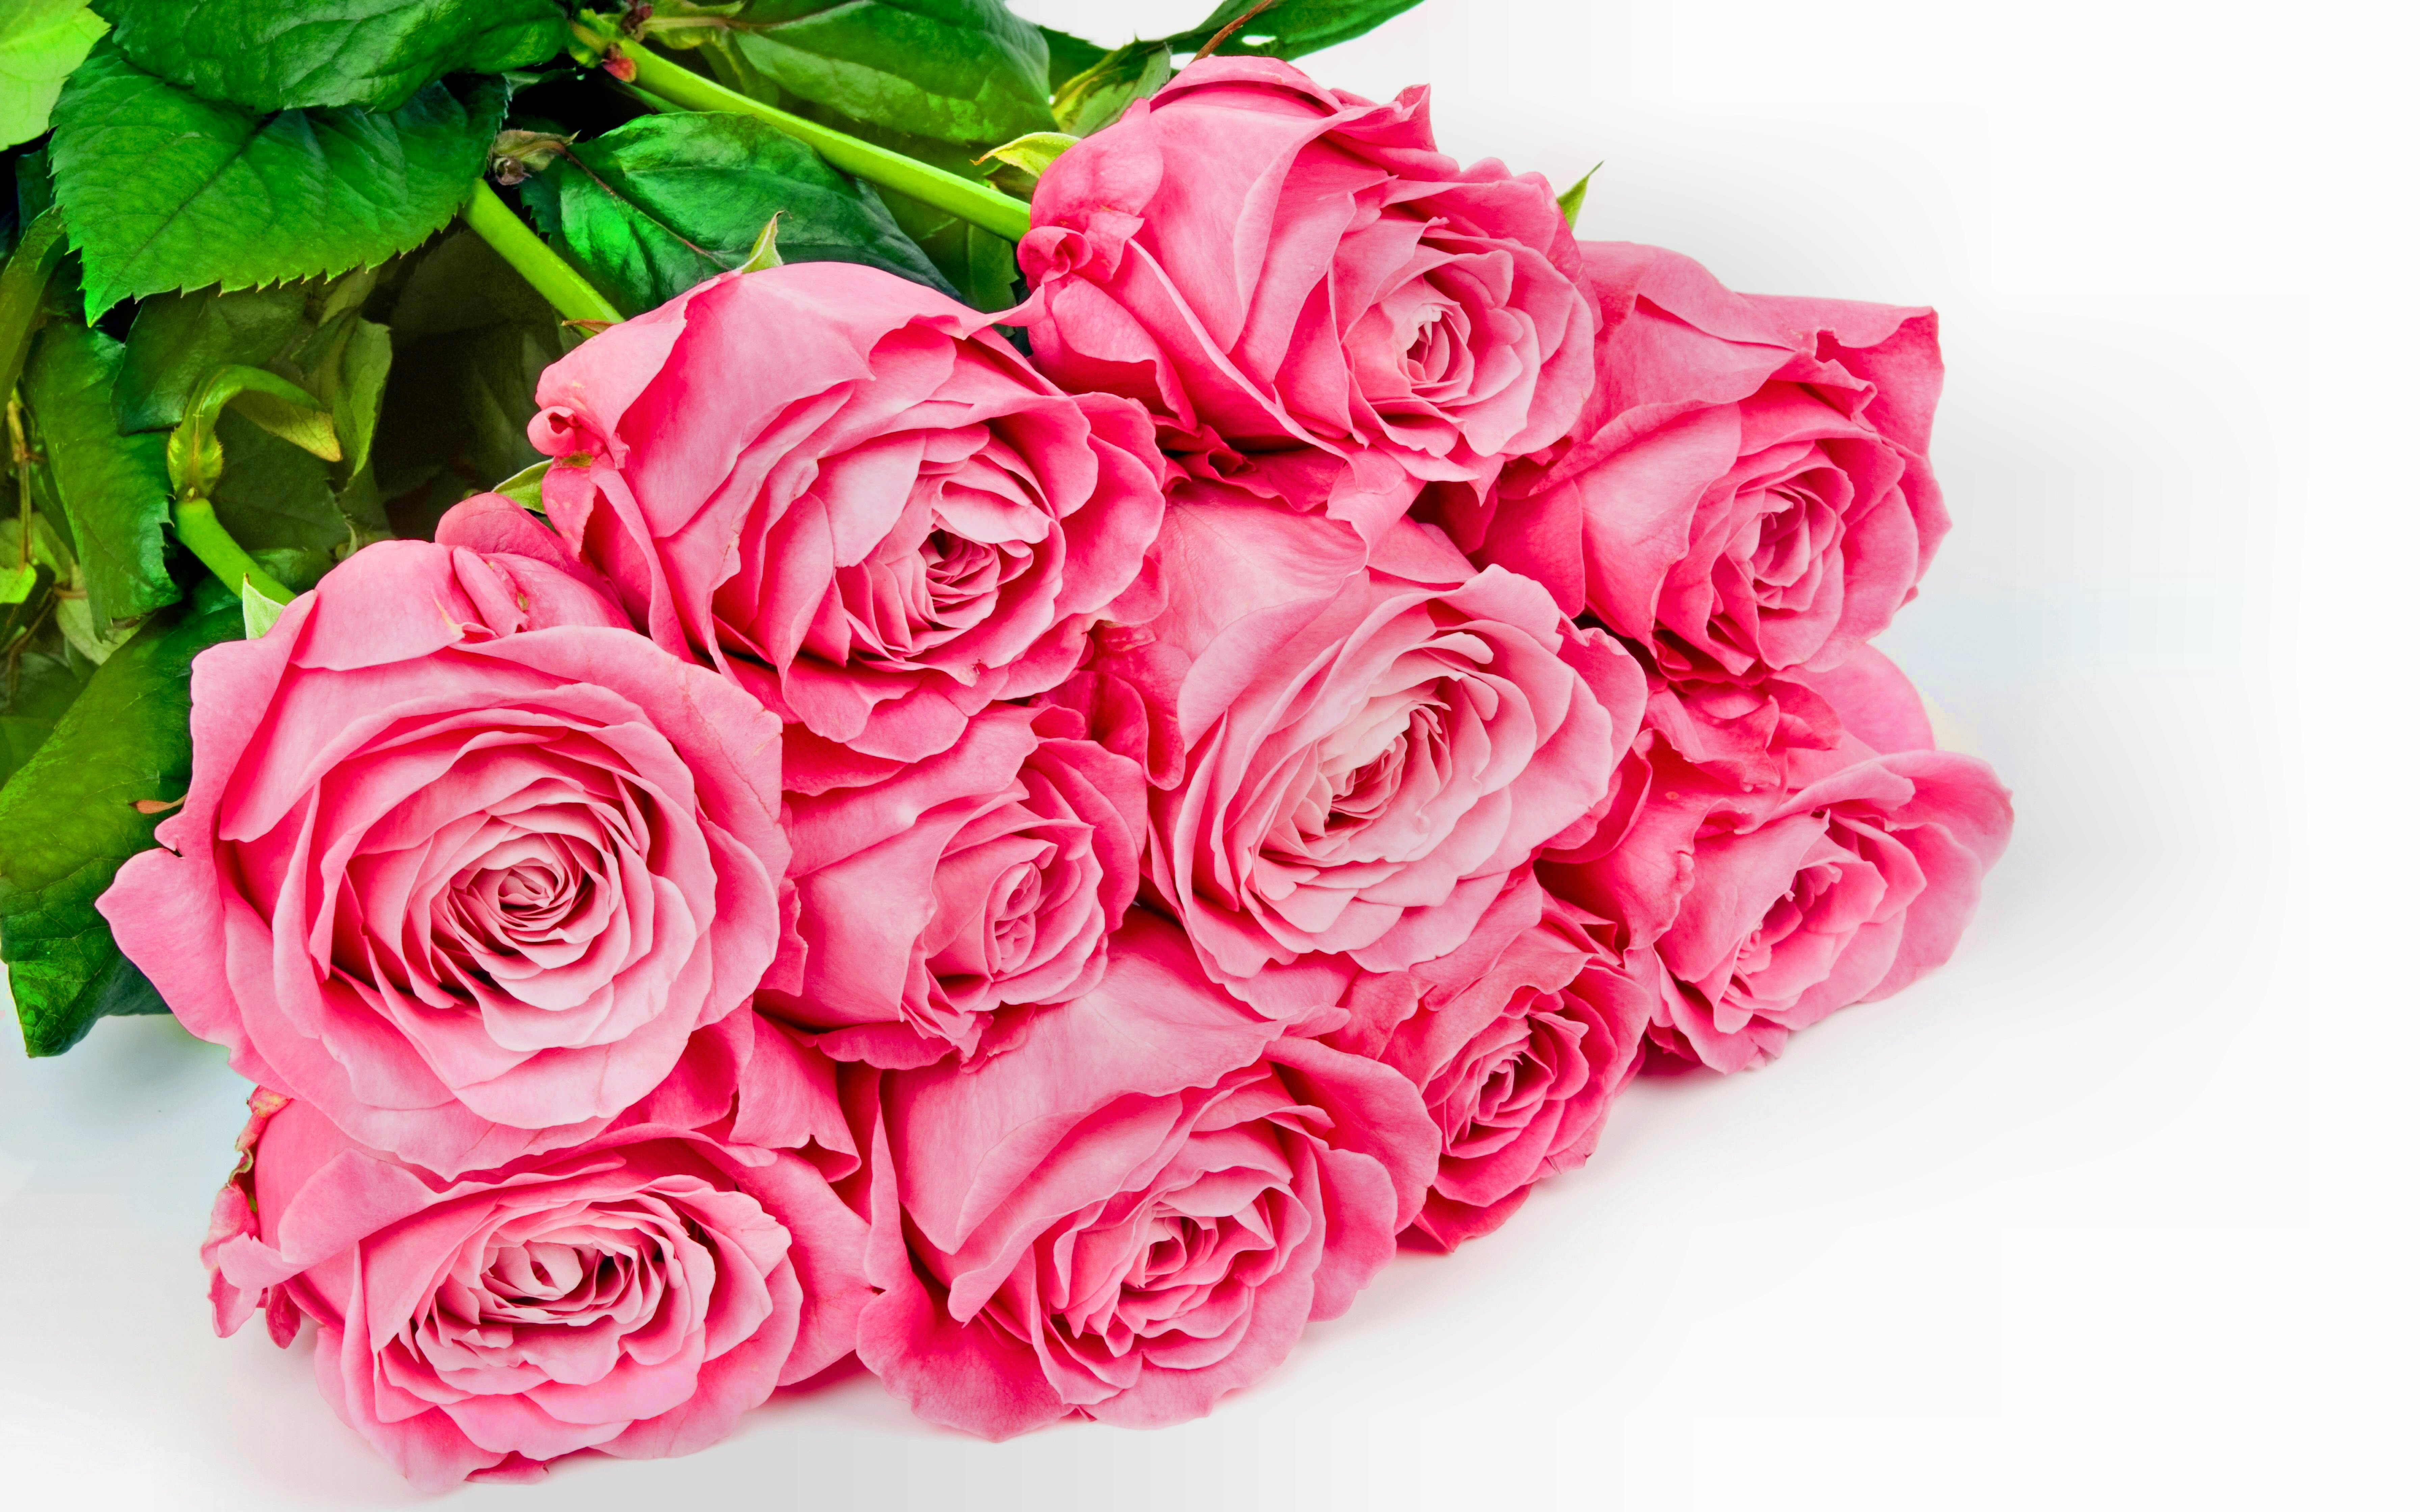 144 Pink Rose HD Wallpapers | Background Images - Wallpaper Abyss